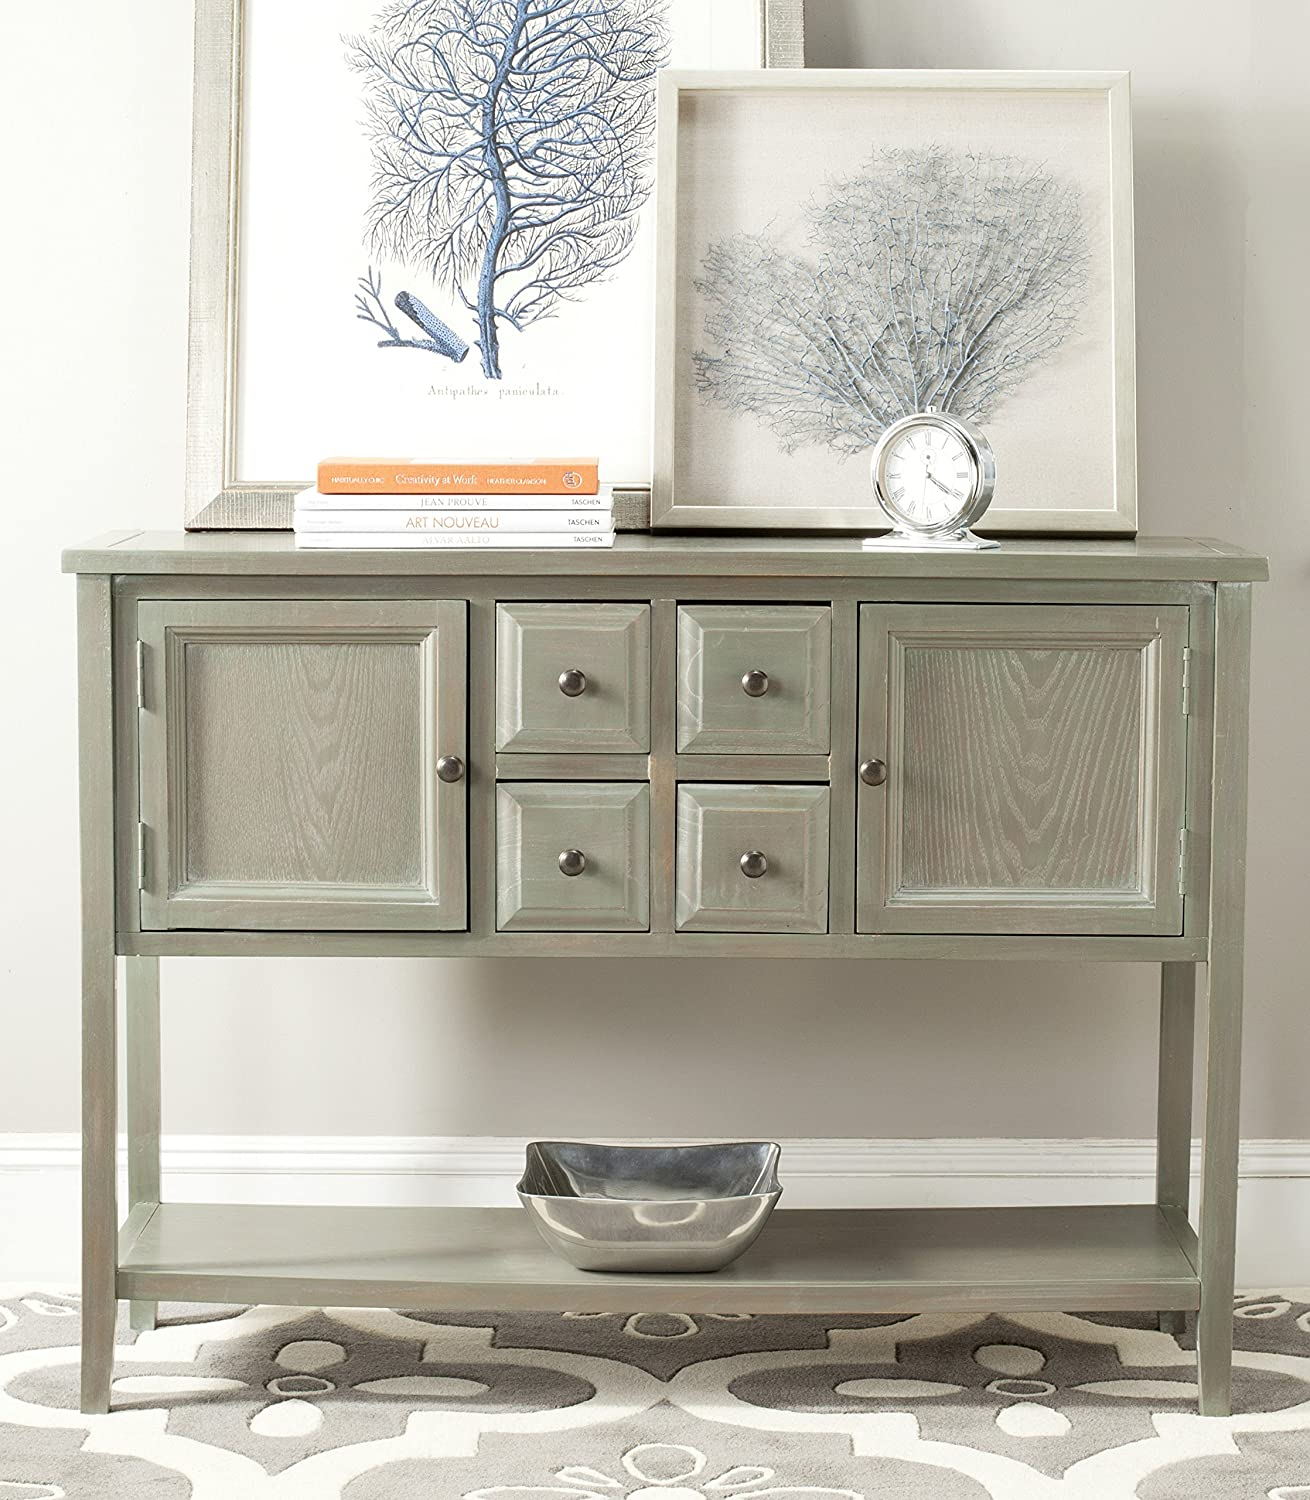 Safavieh American Homes Collection Charlotte Sideboard, French Grey